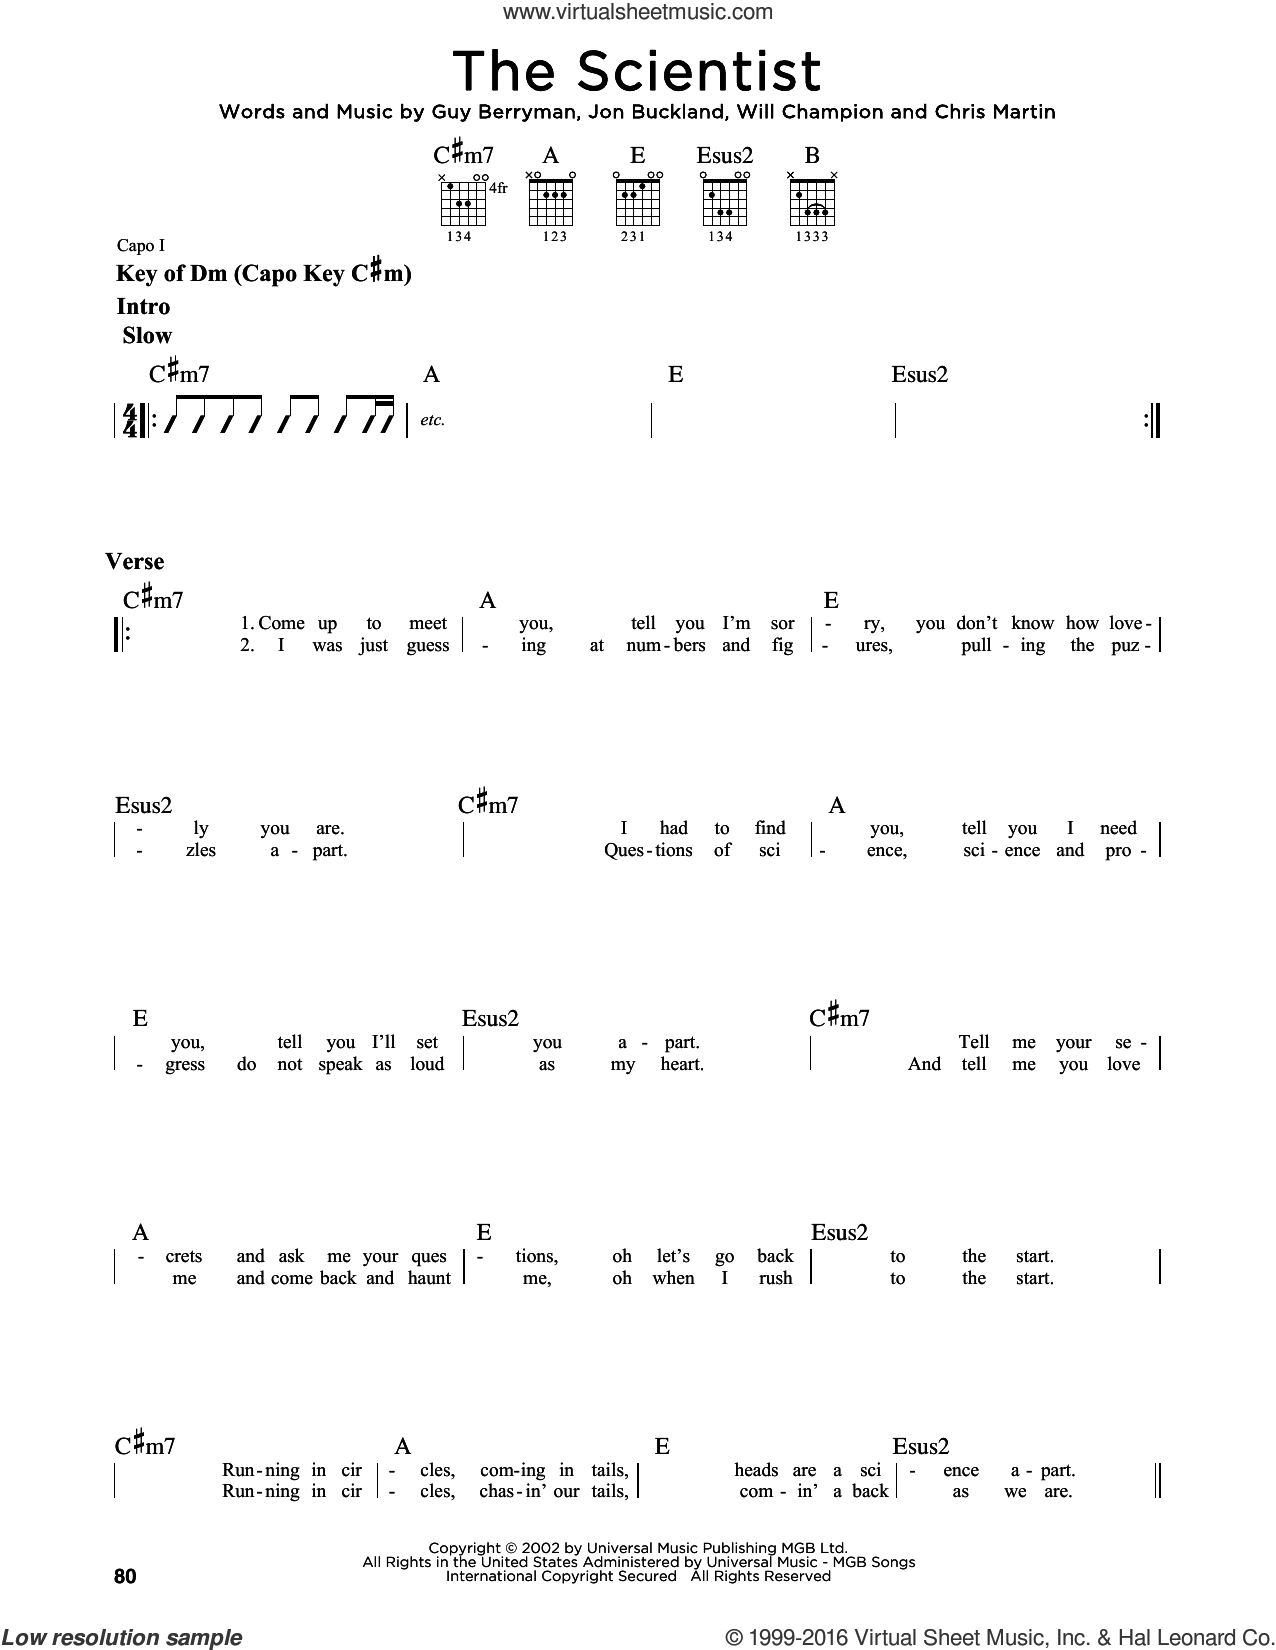 The Scientist sheet music for guitar solo (lead sheet) by Coldplay, Glee, Miscellaneous, Chris Martin, Guy Berryman, Jon Buckland and Will Champion, intermediate guitar (lead sheet)